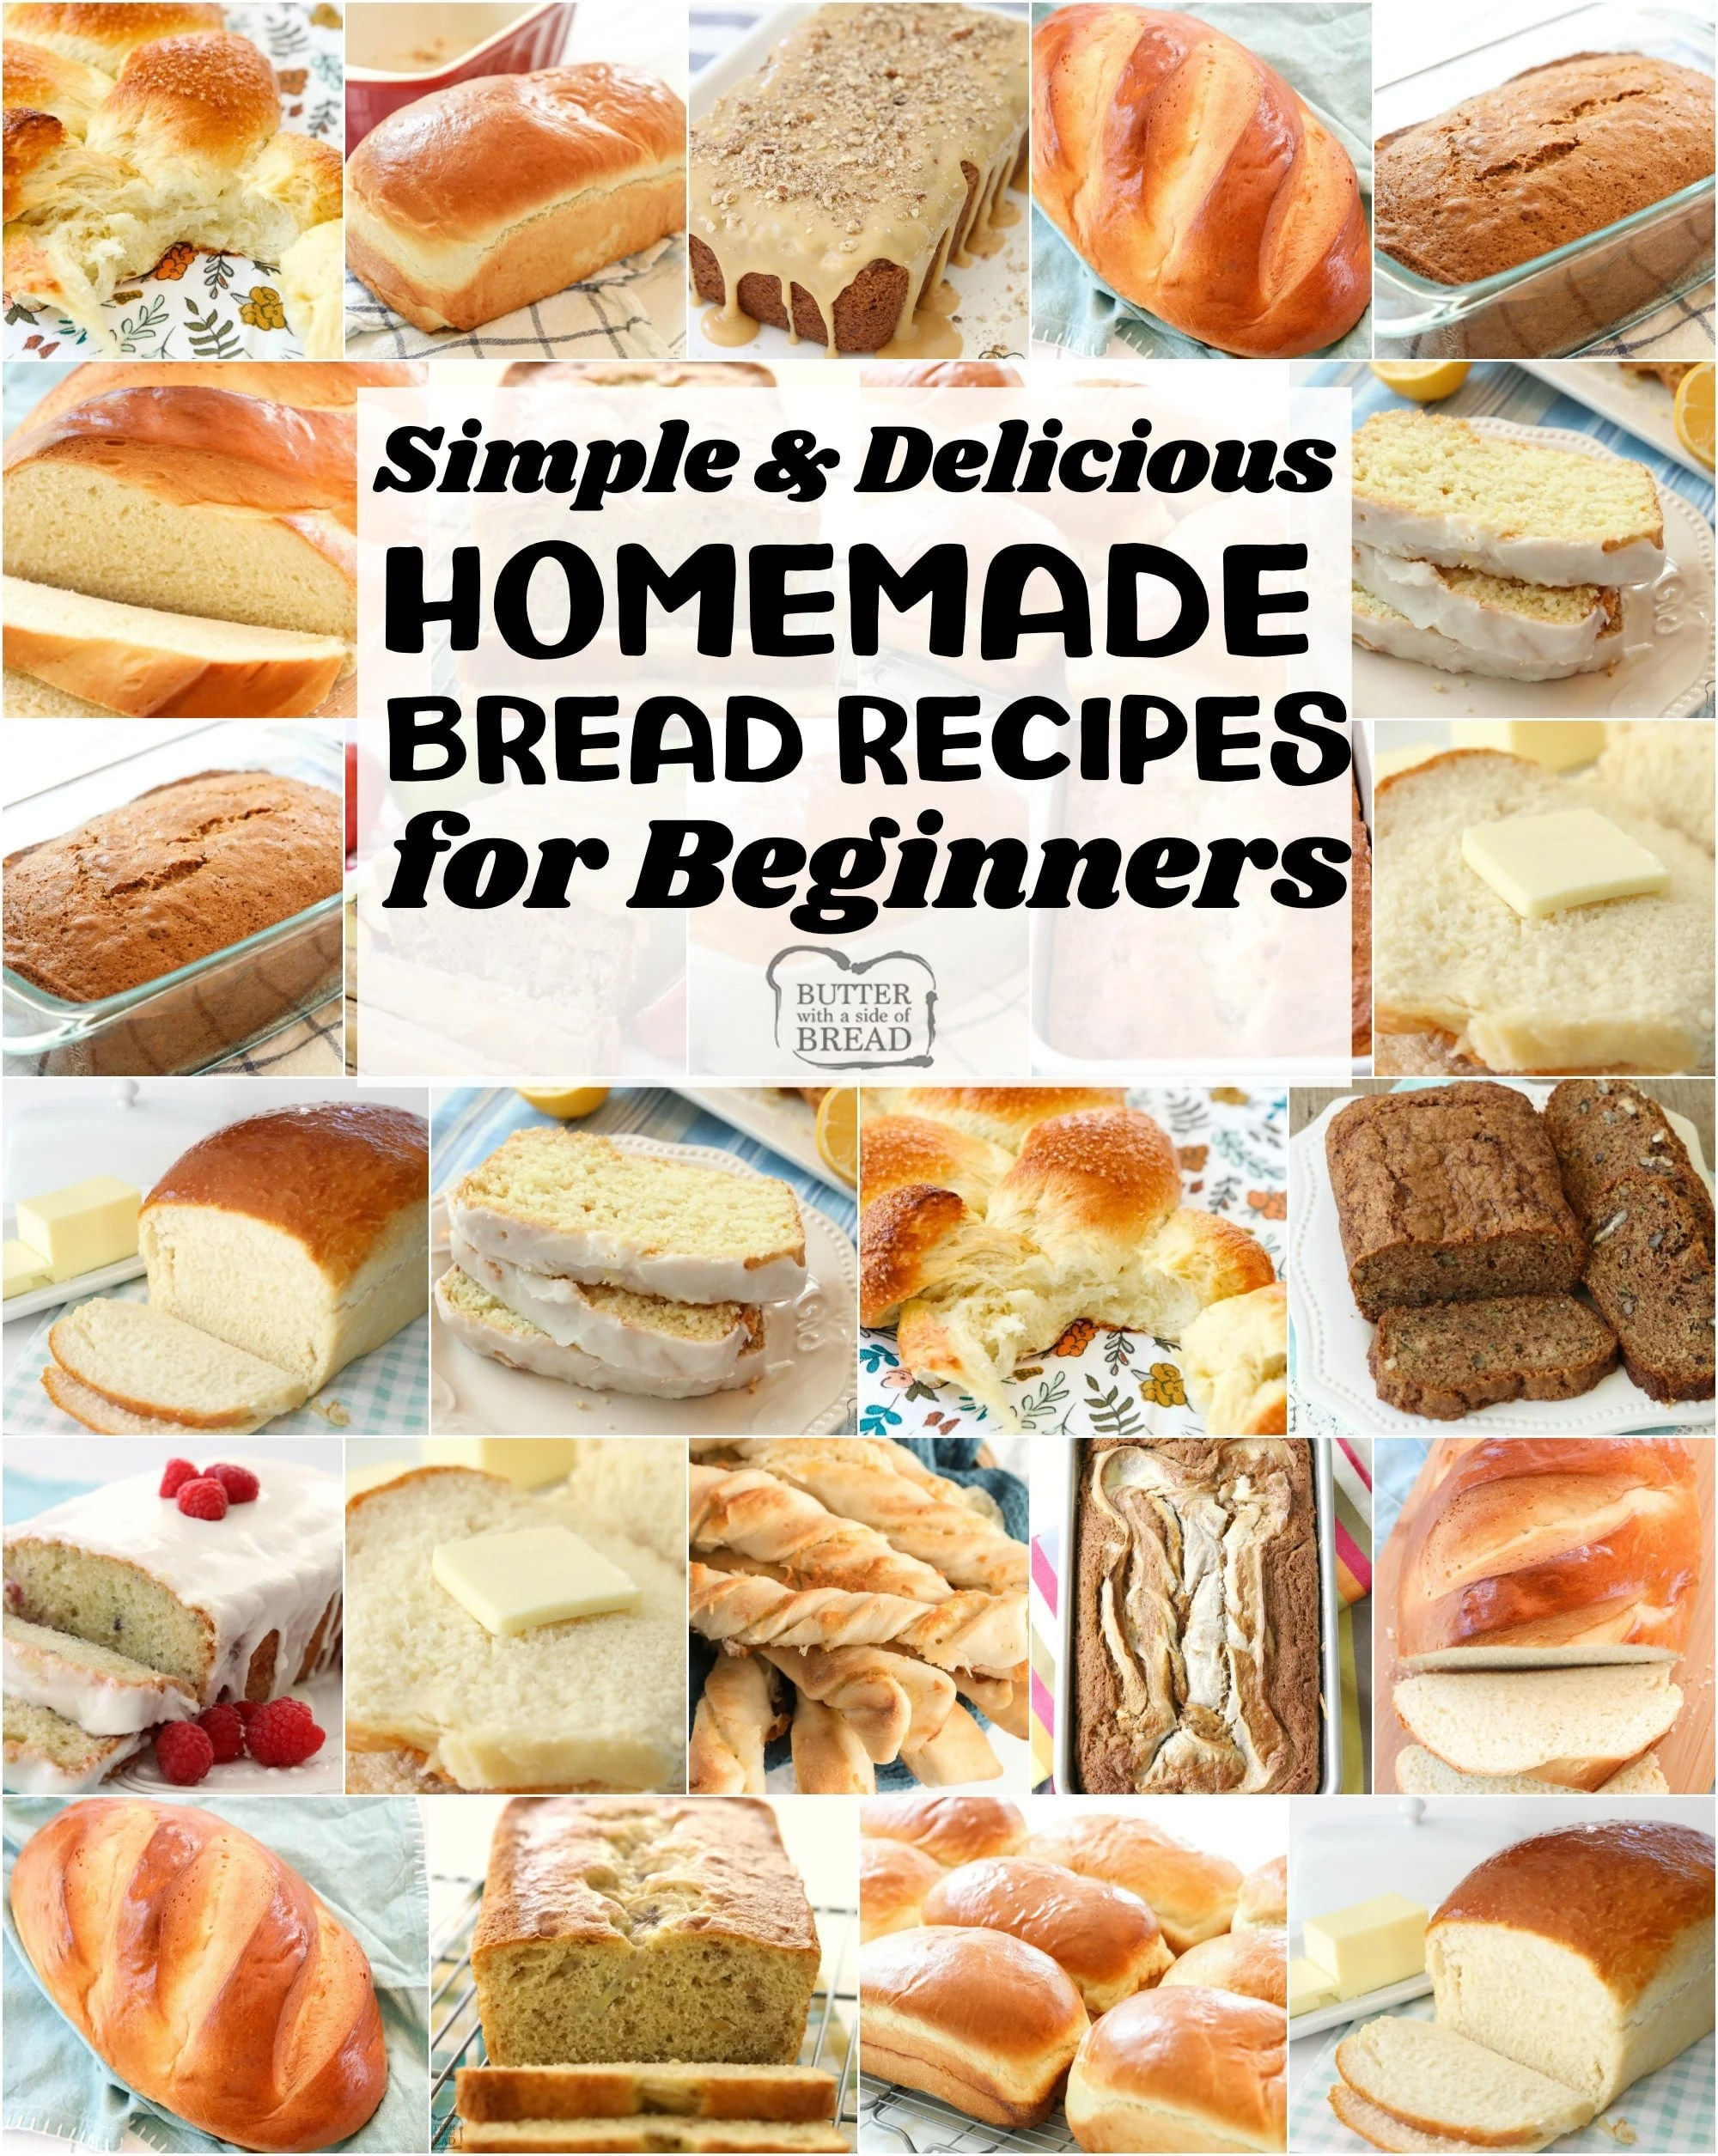 Best Bread Recipes Easy Homemade Bread Recipes For Beginners Butter With A Side Of Bread